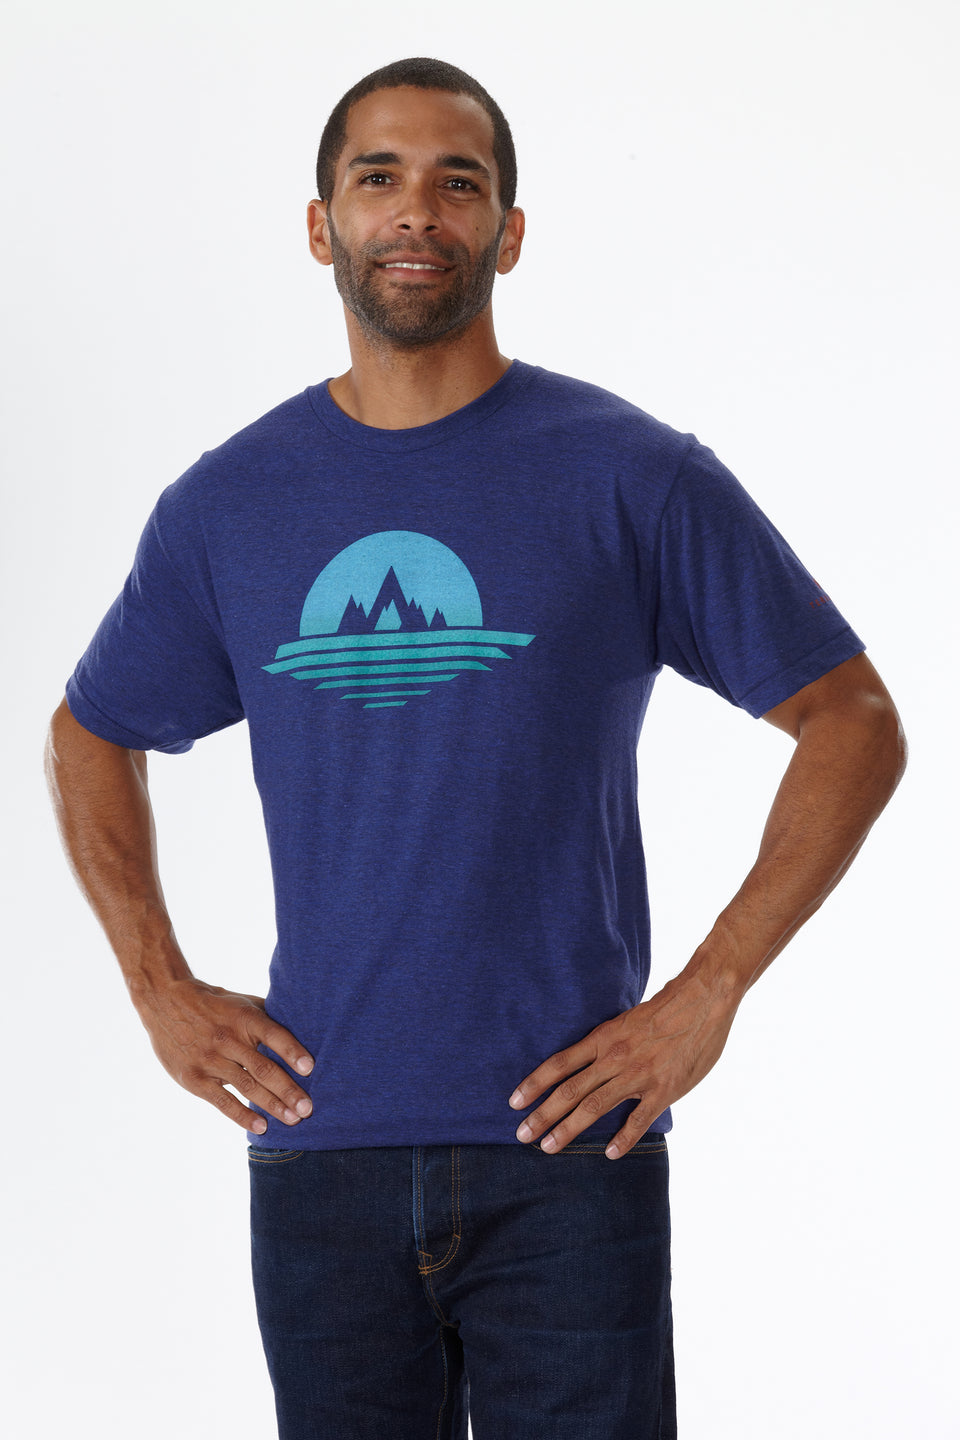 VISTA (MEN'S) T-SHIRT by Terracea - Waterproof, Windproof, Weatherproof Technical Outerwear